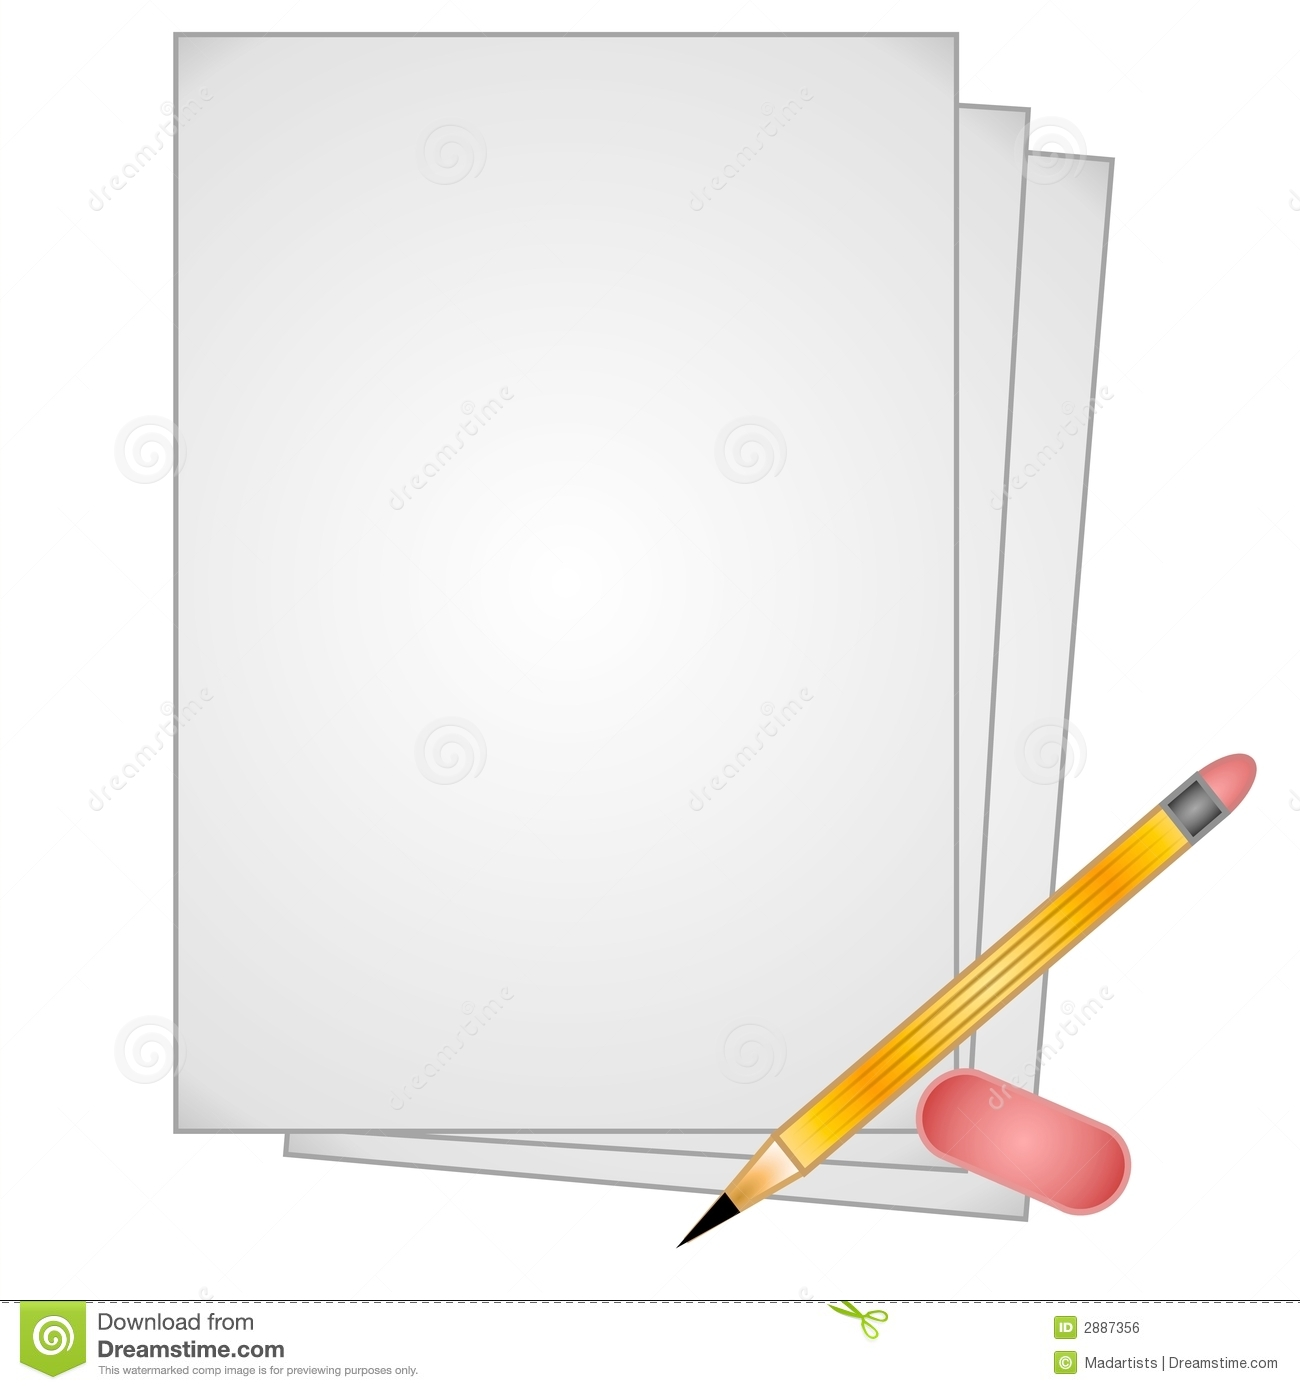 paper and pencil clipart - photo #24